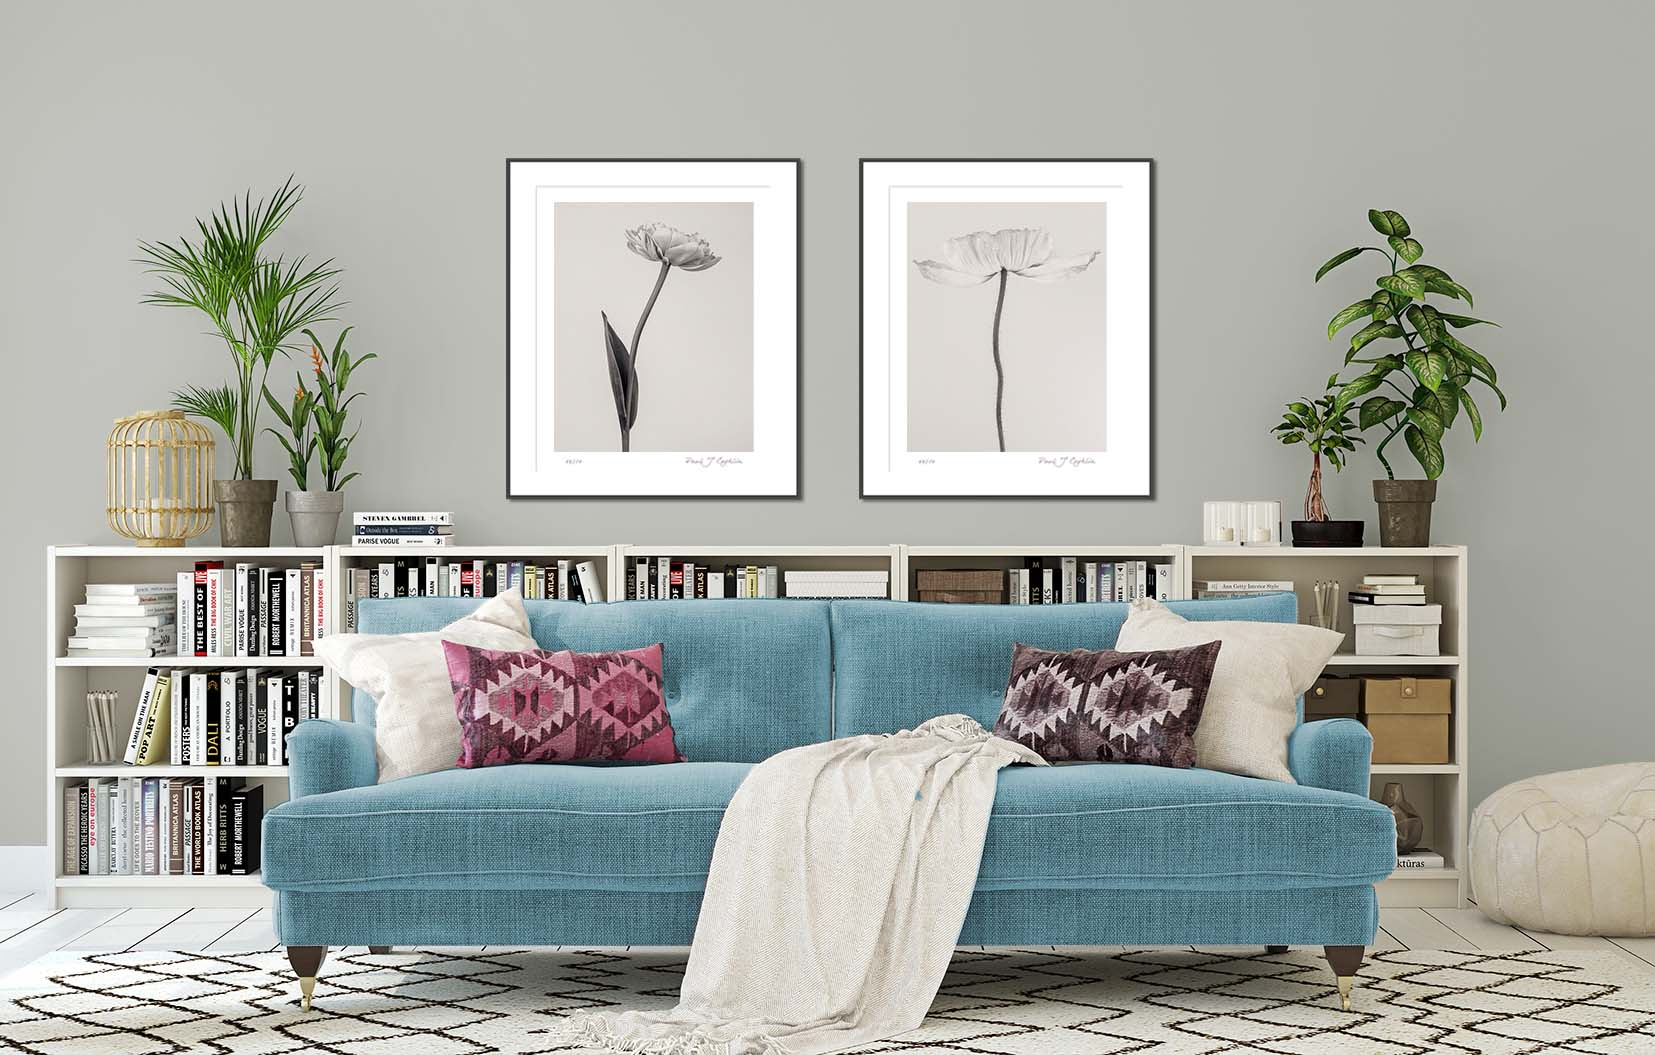 Limited edition fine art monochrome floral studies by award-winning photographer Paul Coghlin.